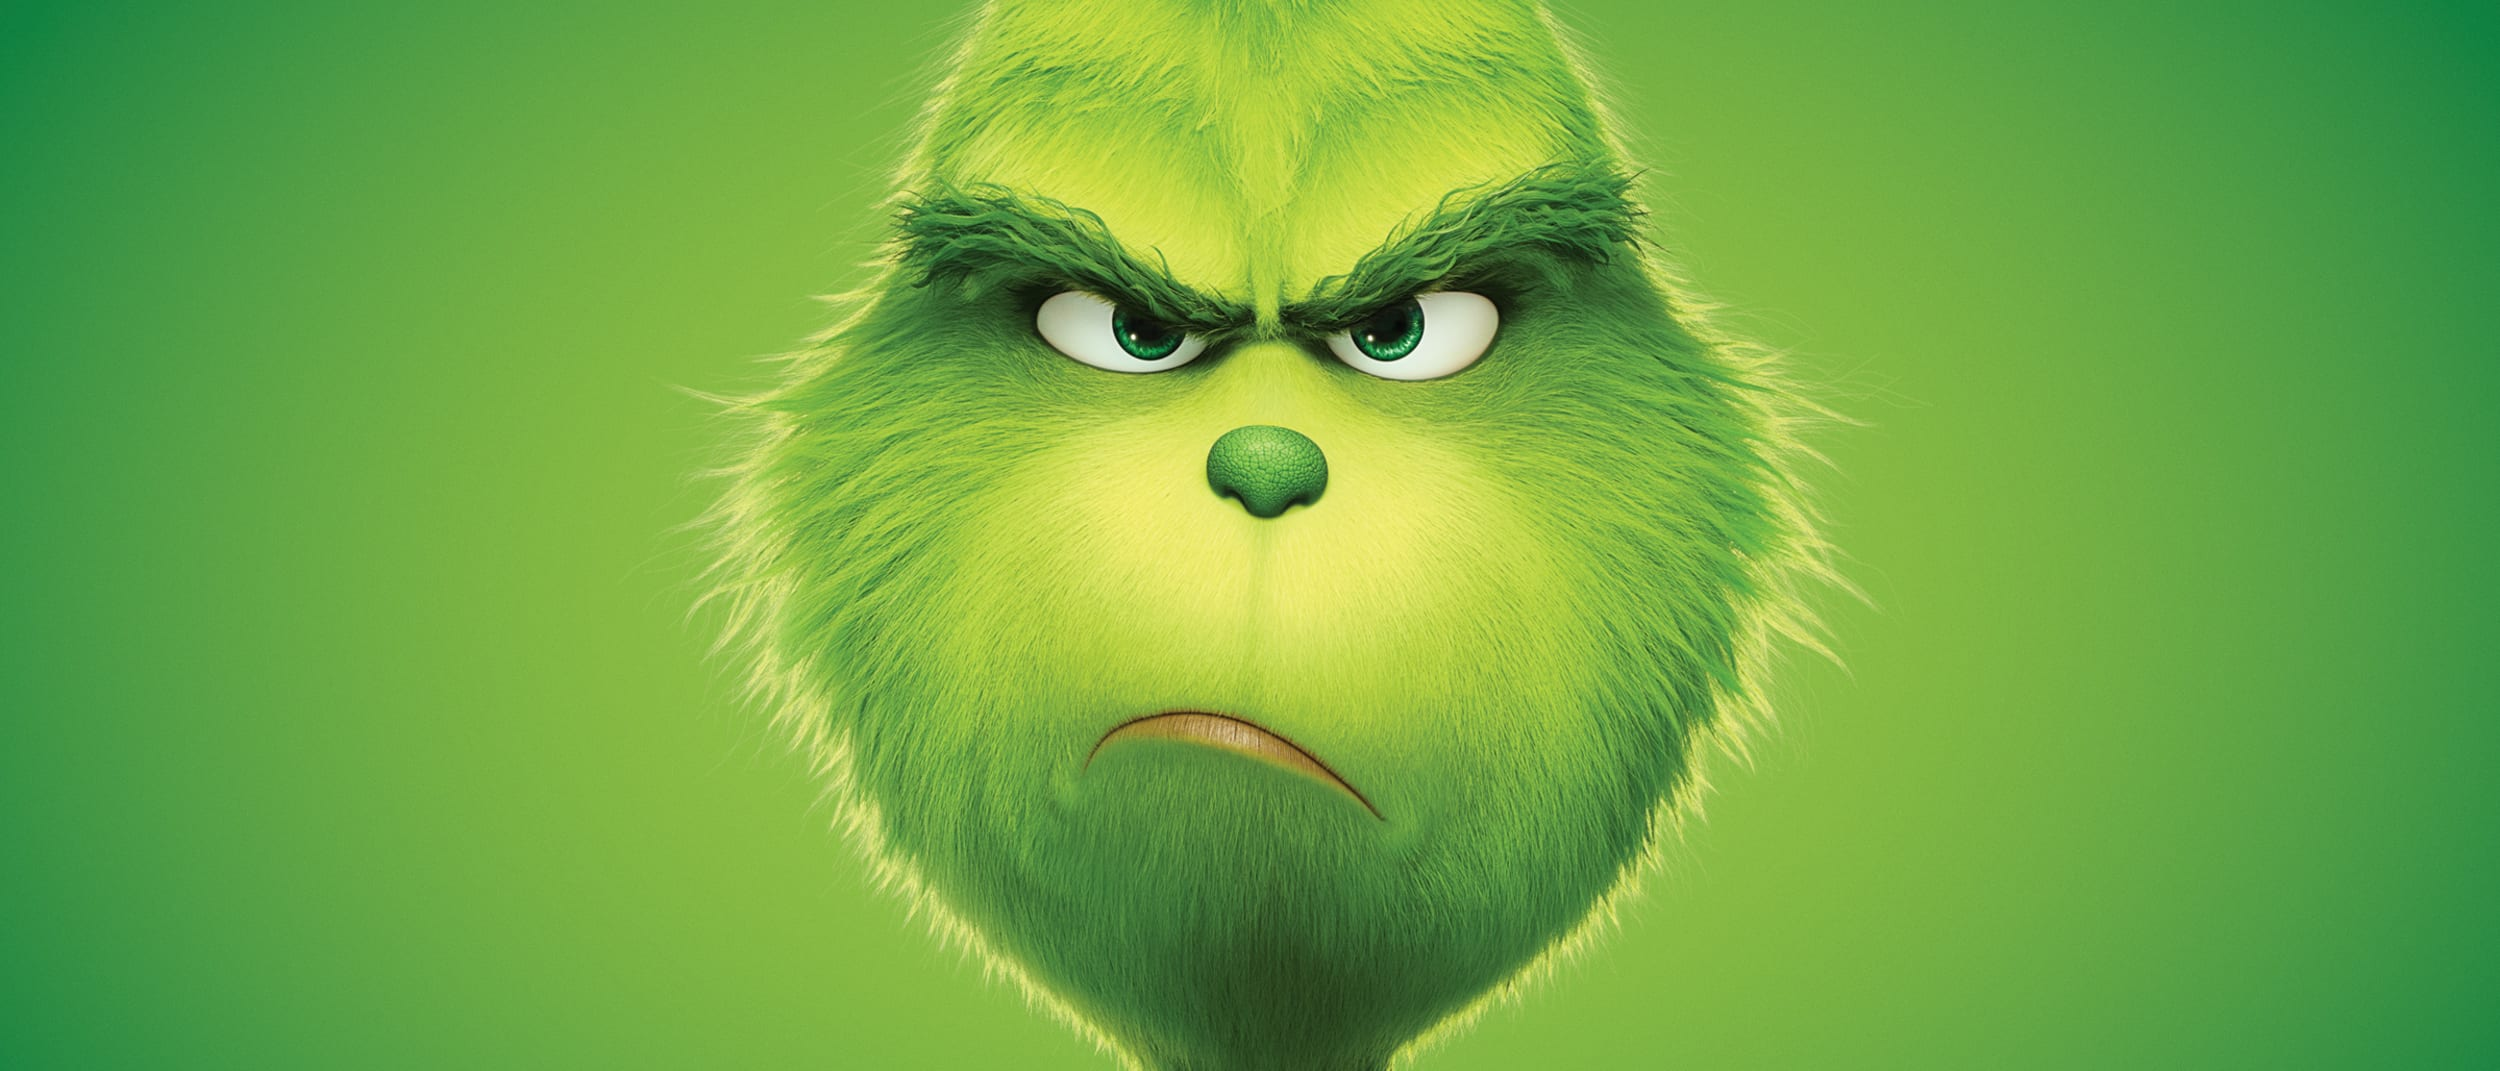 The Grinch family fun day